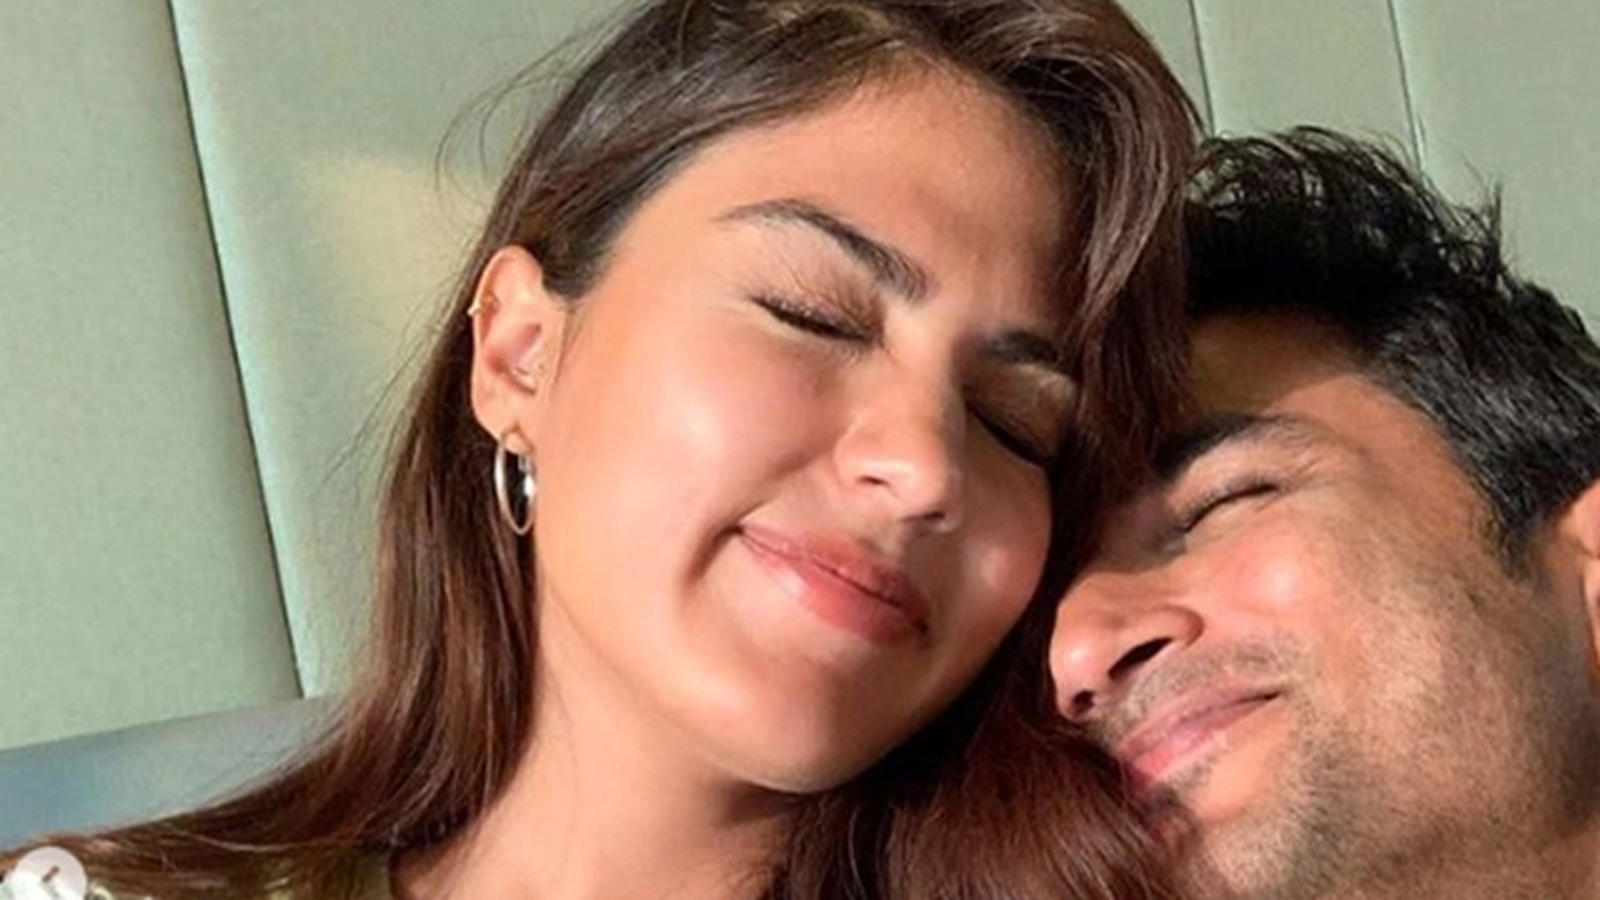 when-rhea-chakraborty-denied-being-in-relationship-with-sushant-singh-rajput-in-april-2020-saying-they-are-good-friends